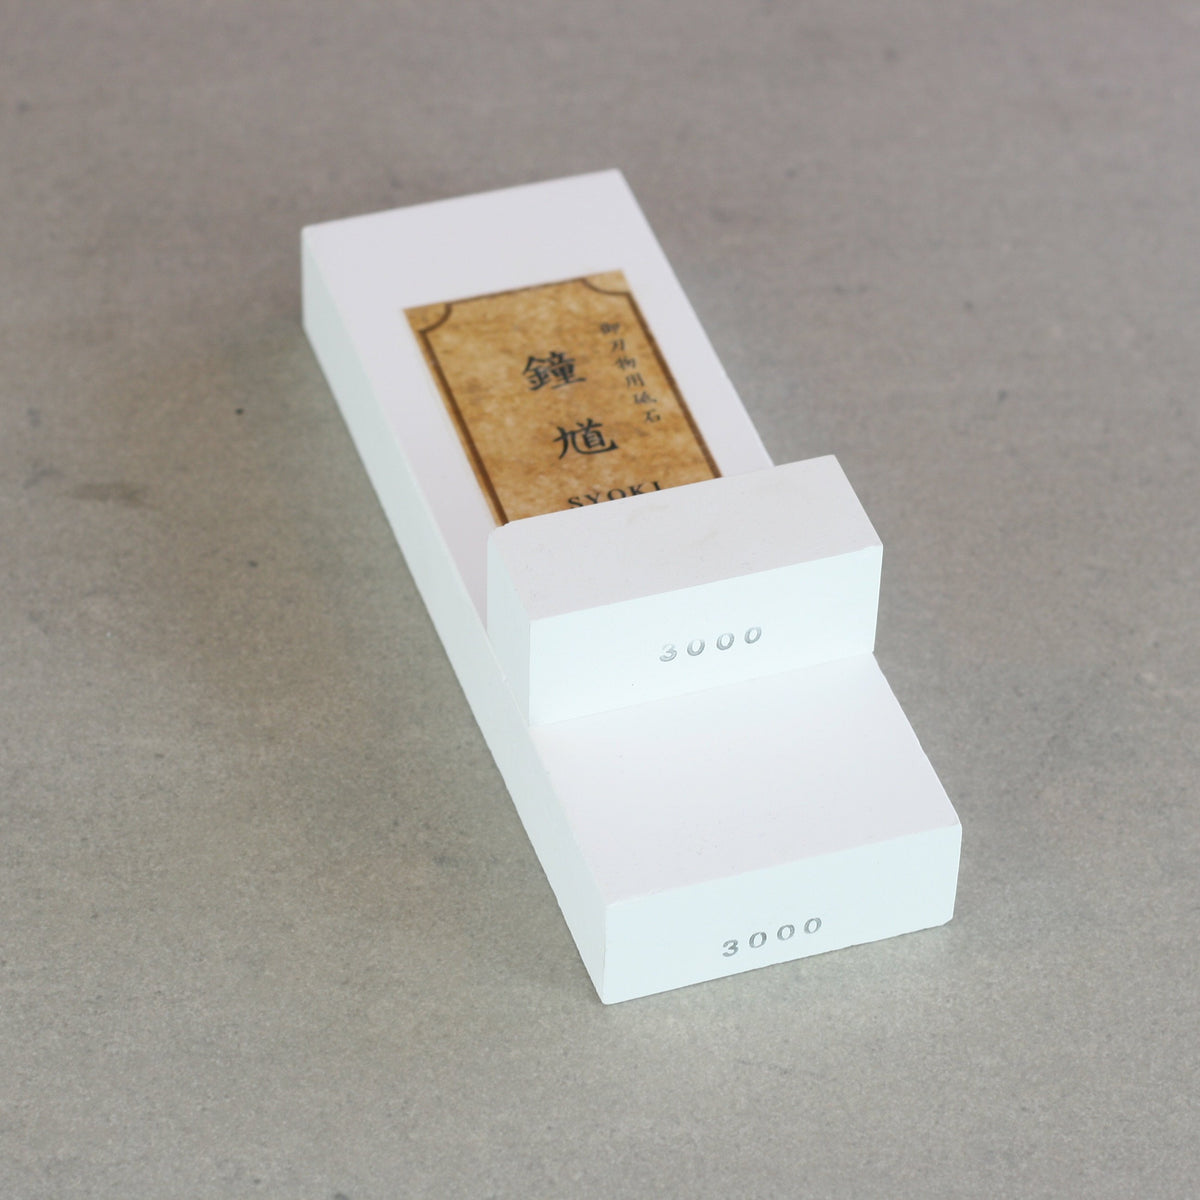 Japanese whetstones - for knife sharpening